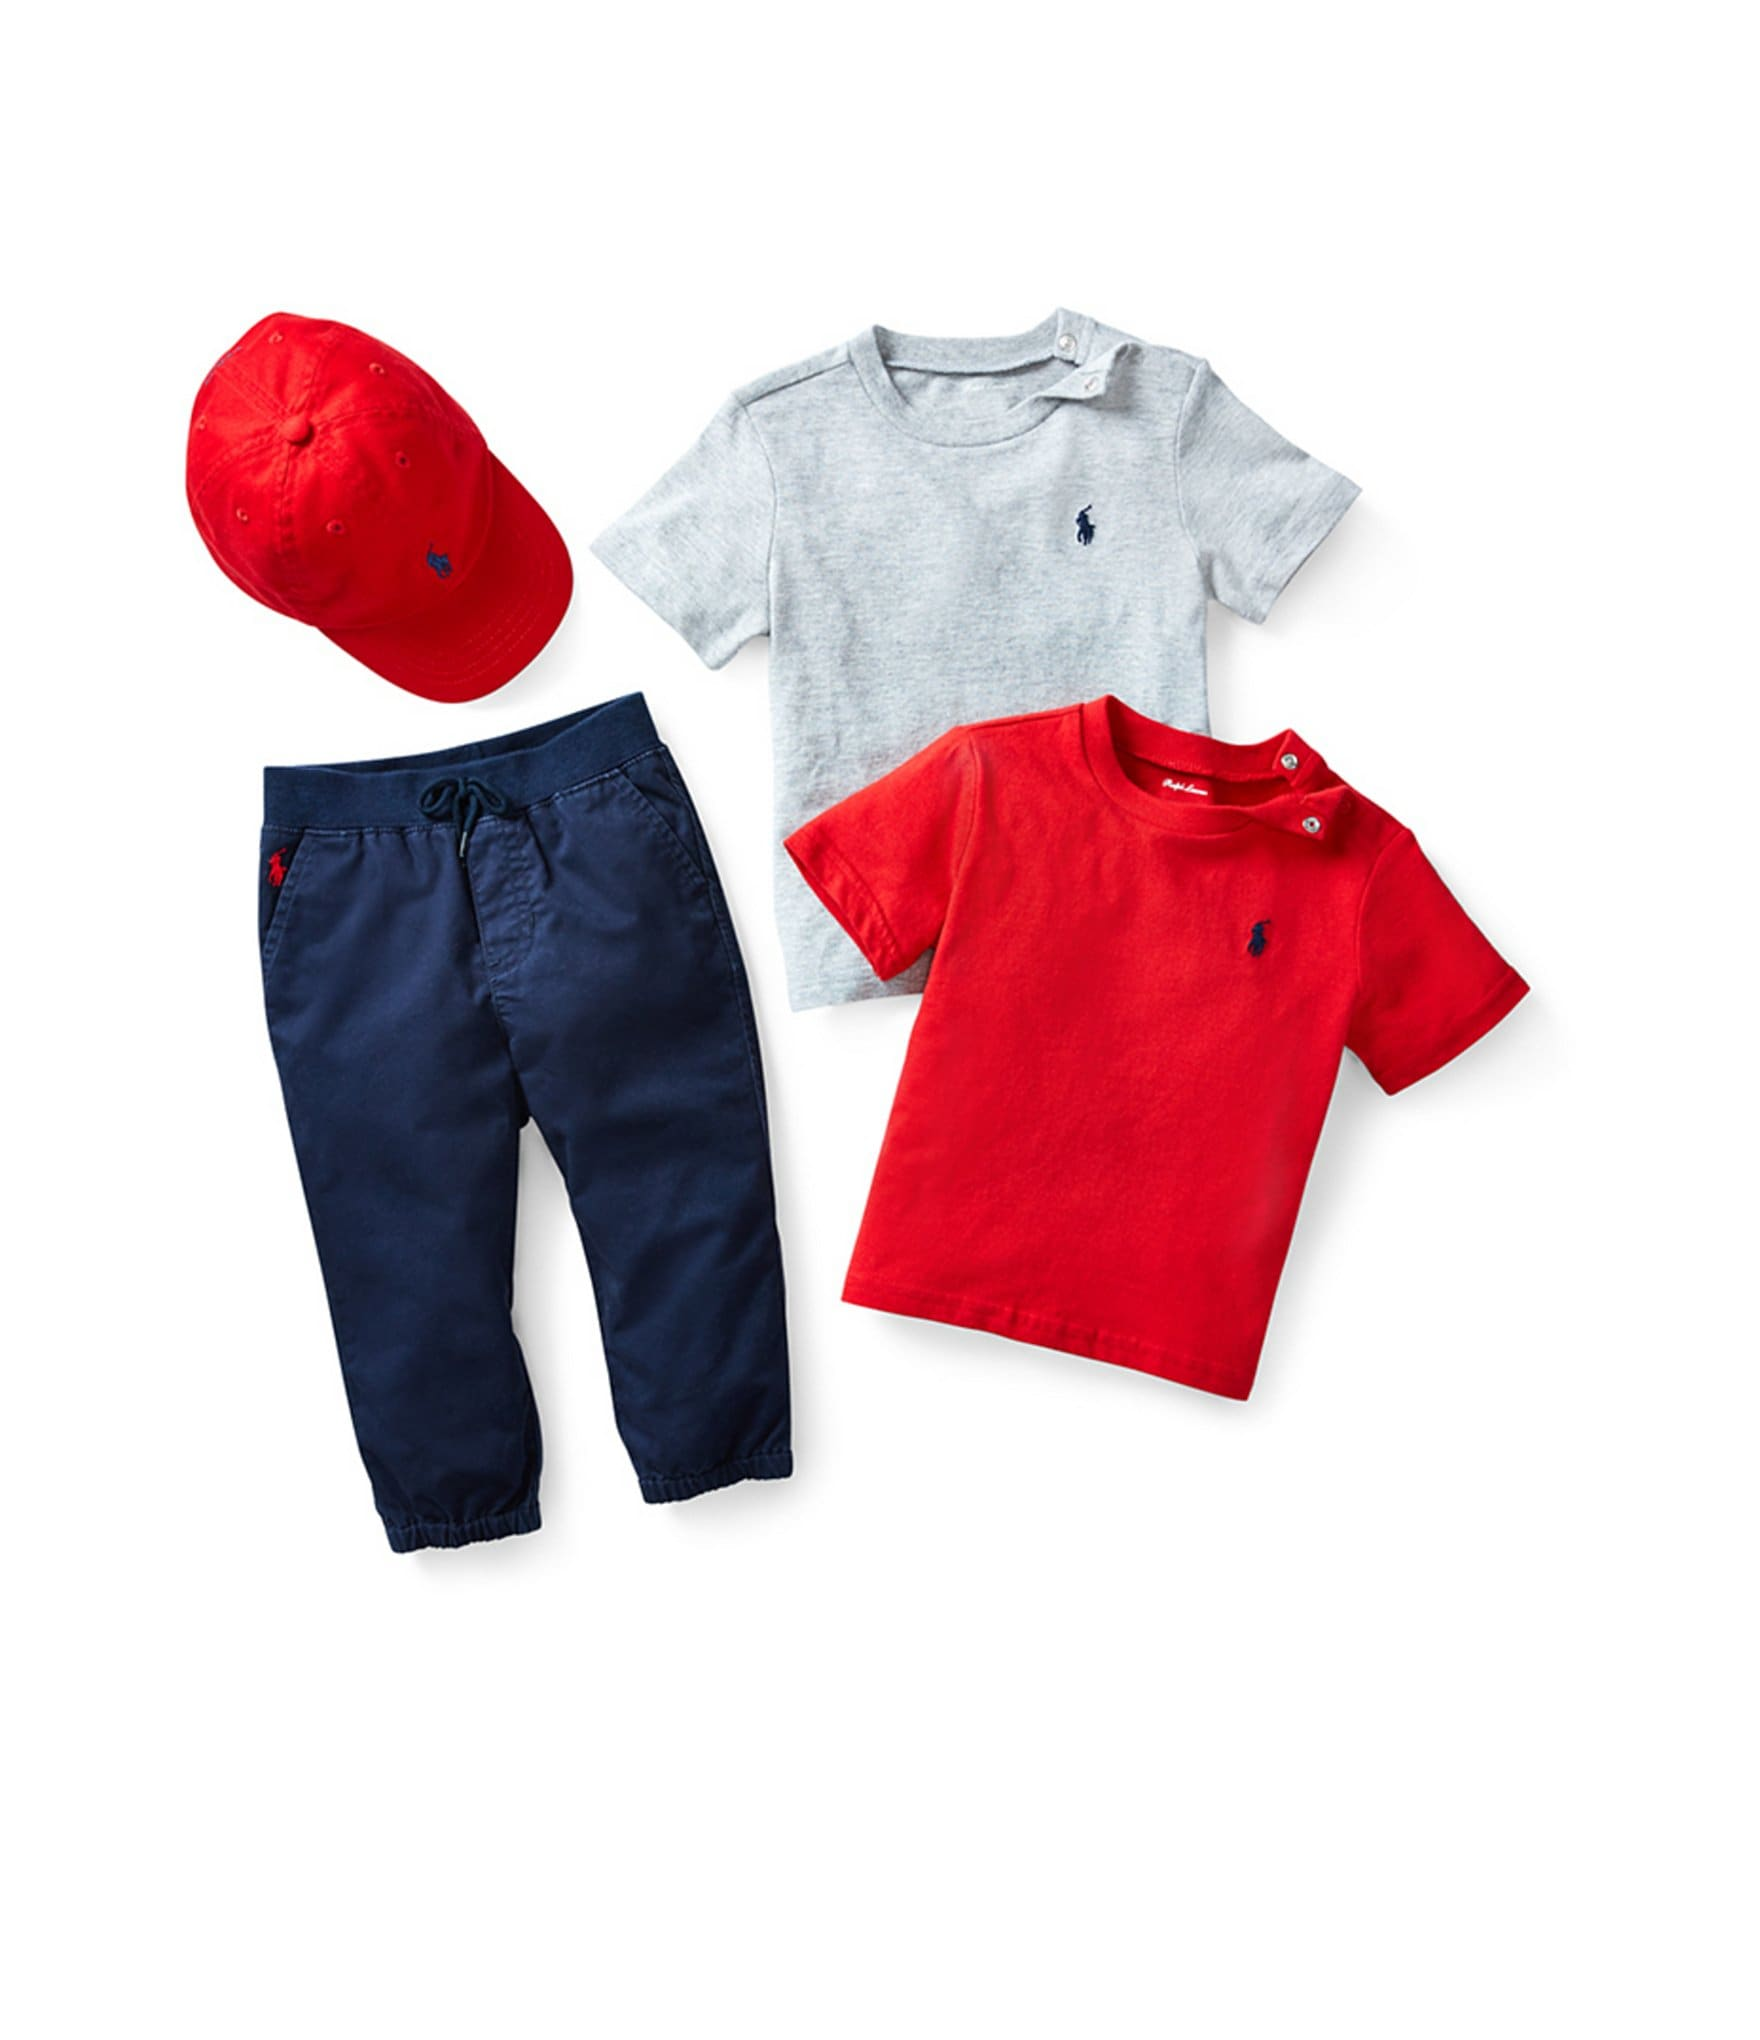 a62f46be7 Baby Boys Clothing | Dillard's